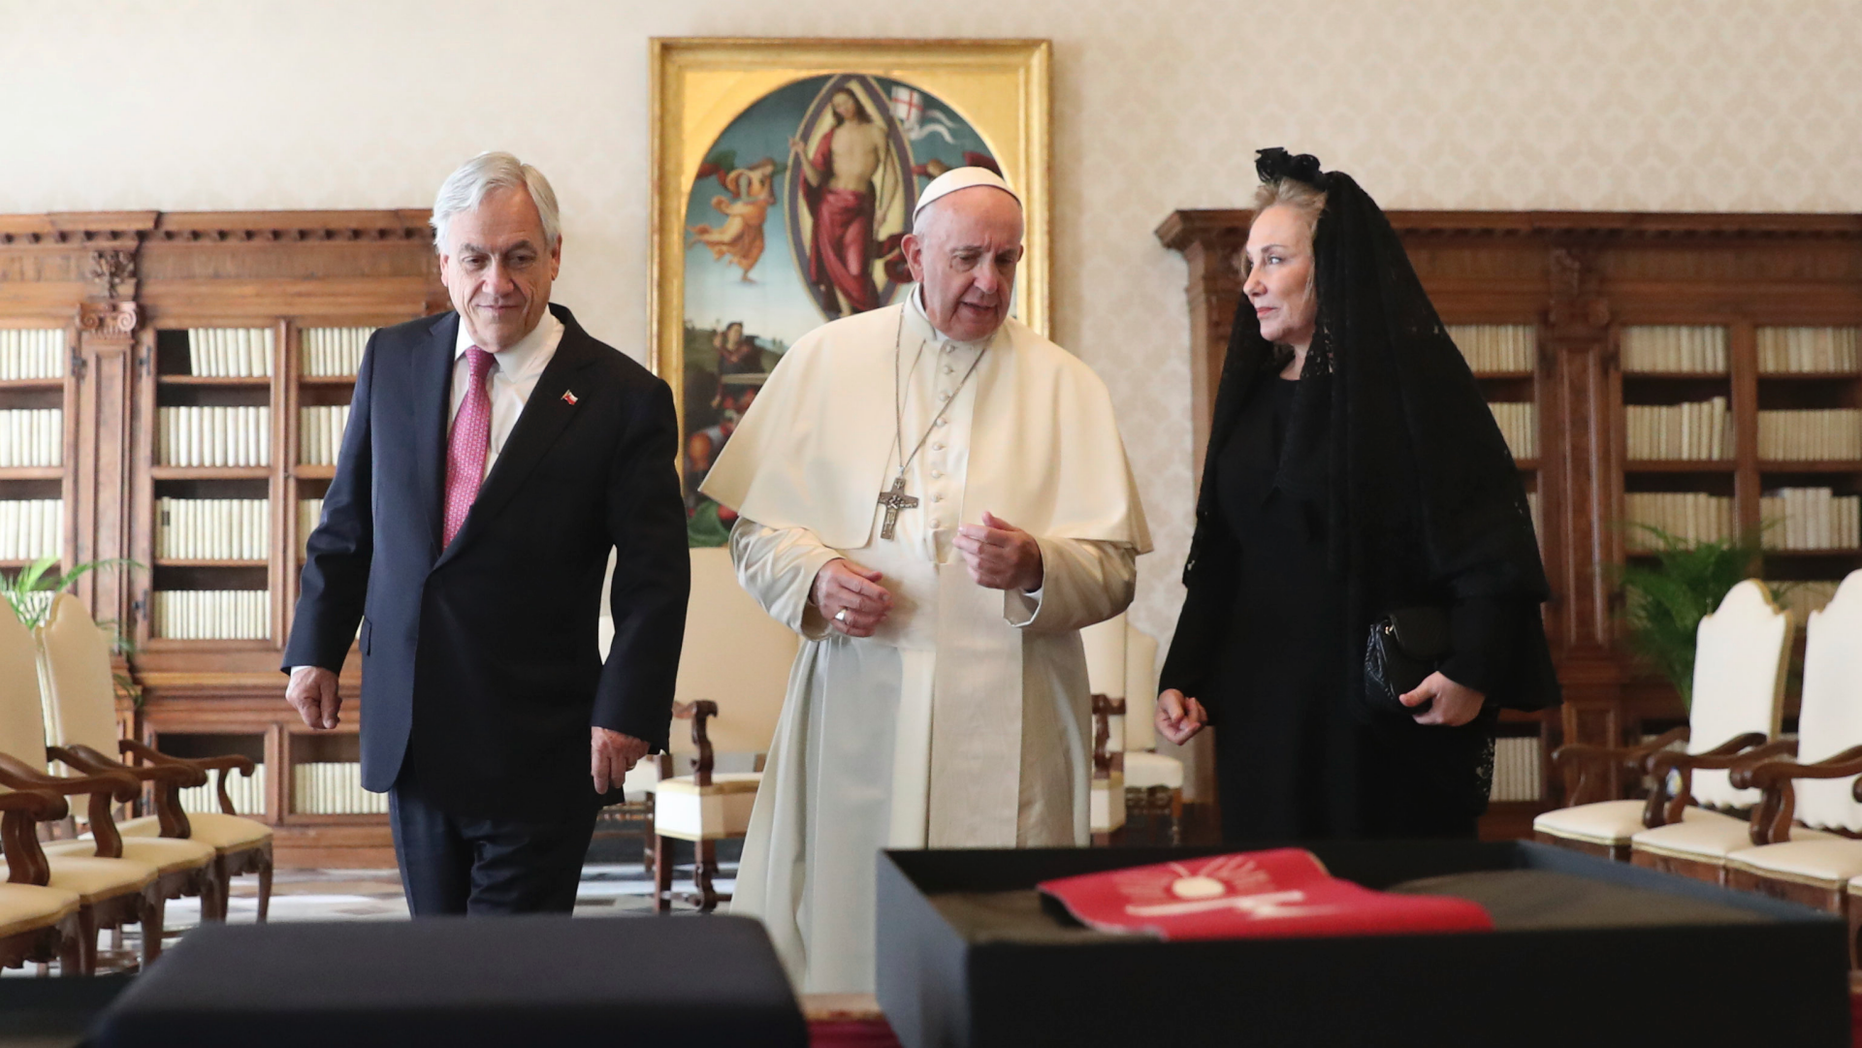 Pope Francis speaks as he meets with Chile's President Sebastian Pinera and his wife Cecilia Morel during a private audience at the Vatican, Saturday, Oct. 13, 2018. (Alessandro Bianchi/Pool Photo via AP)